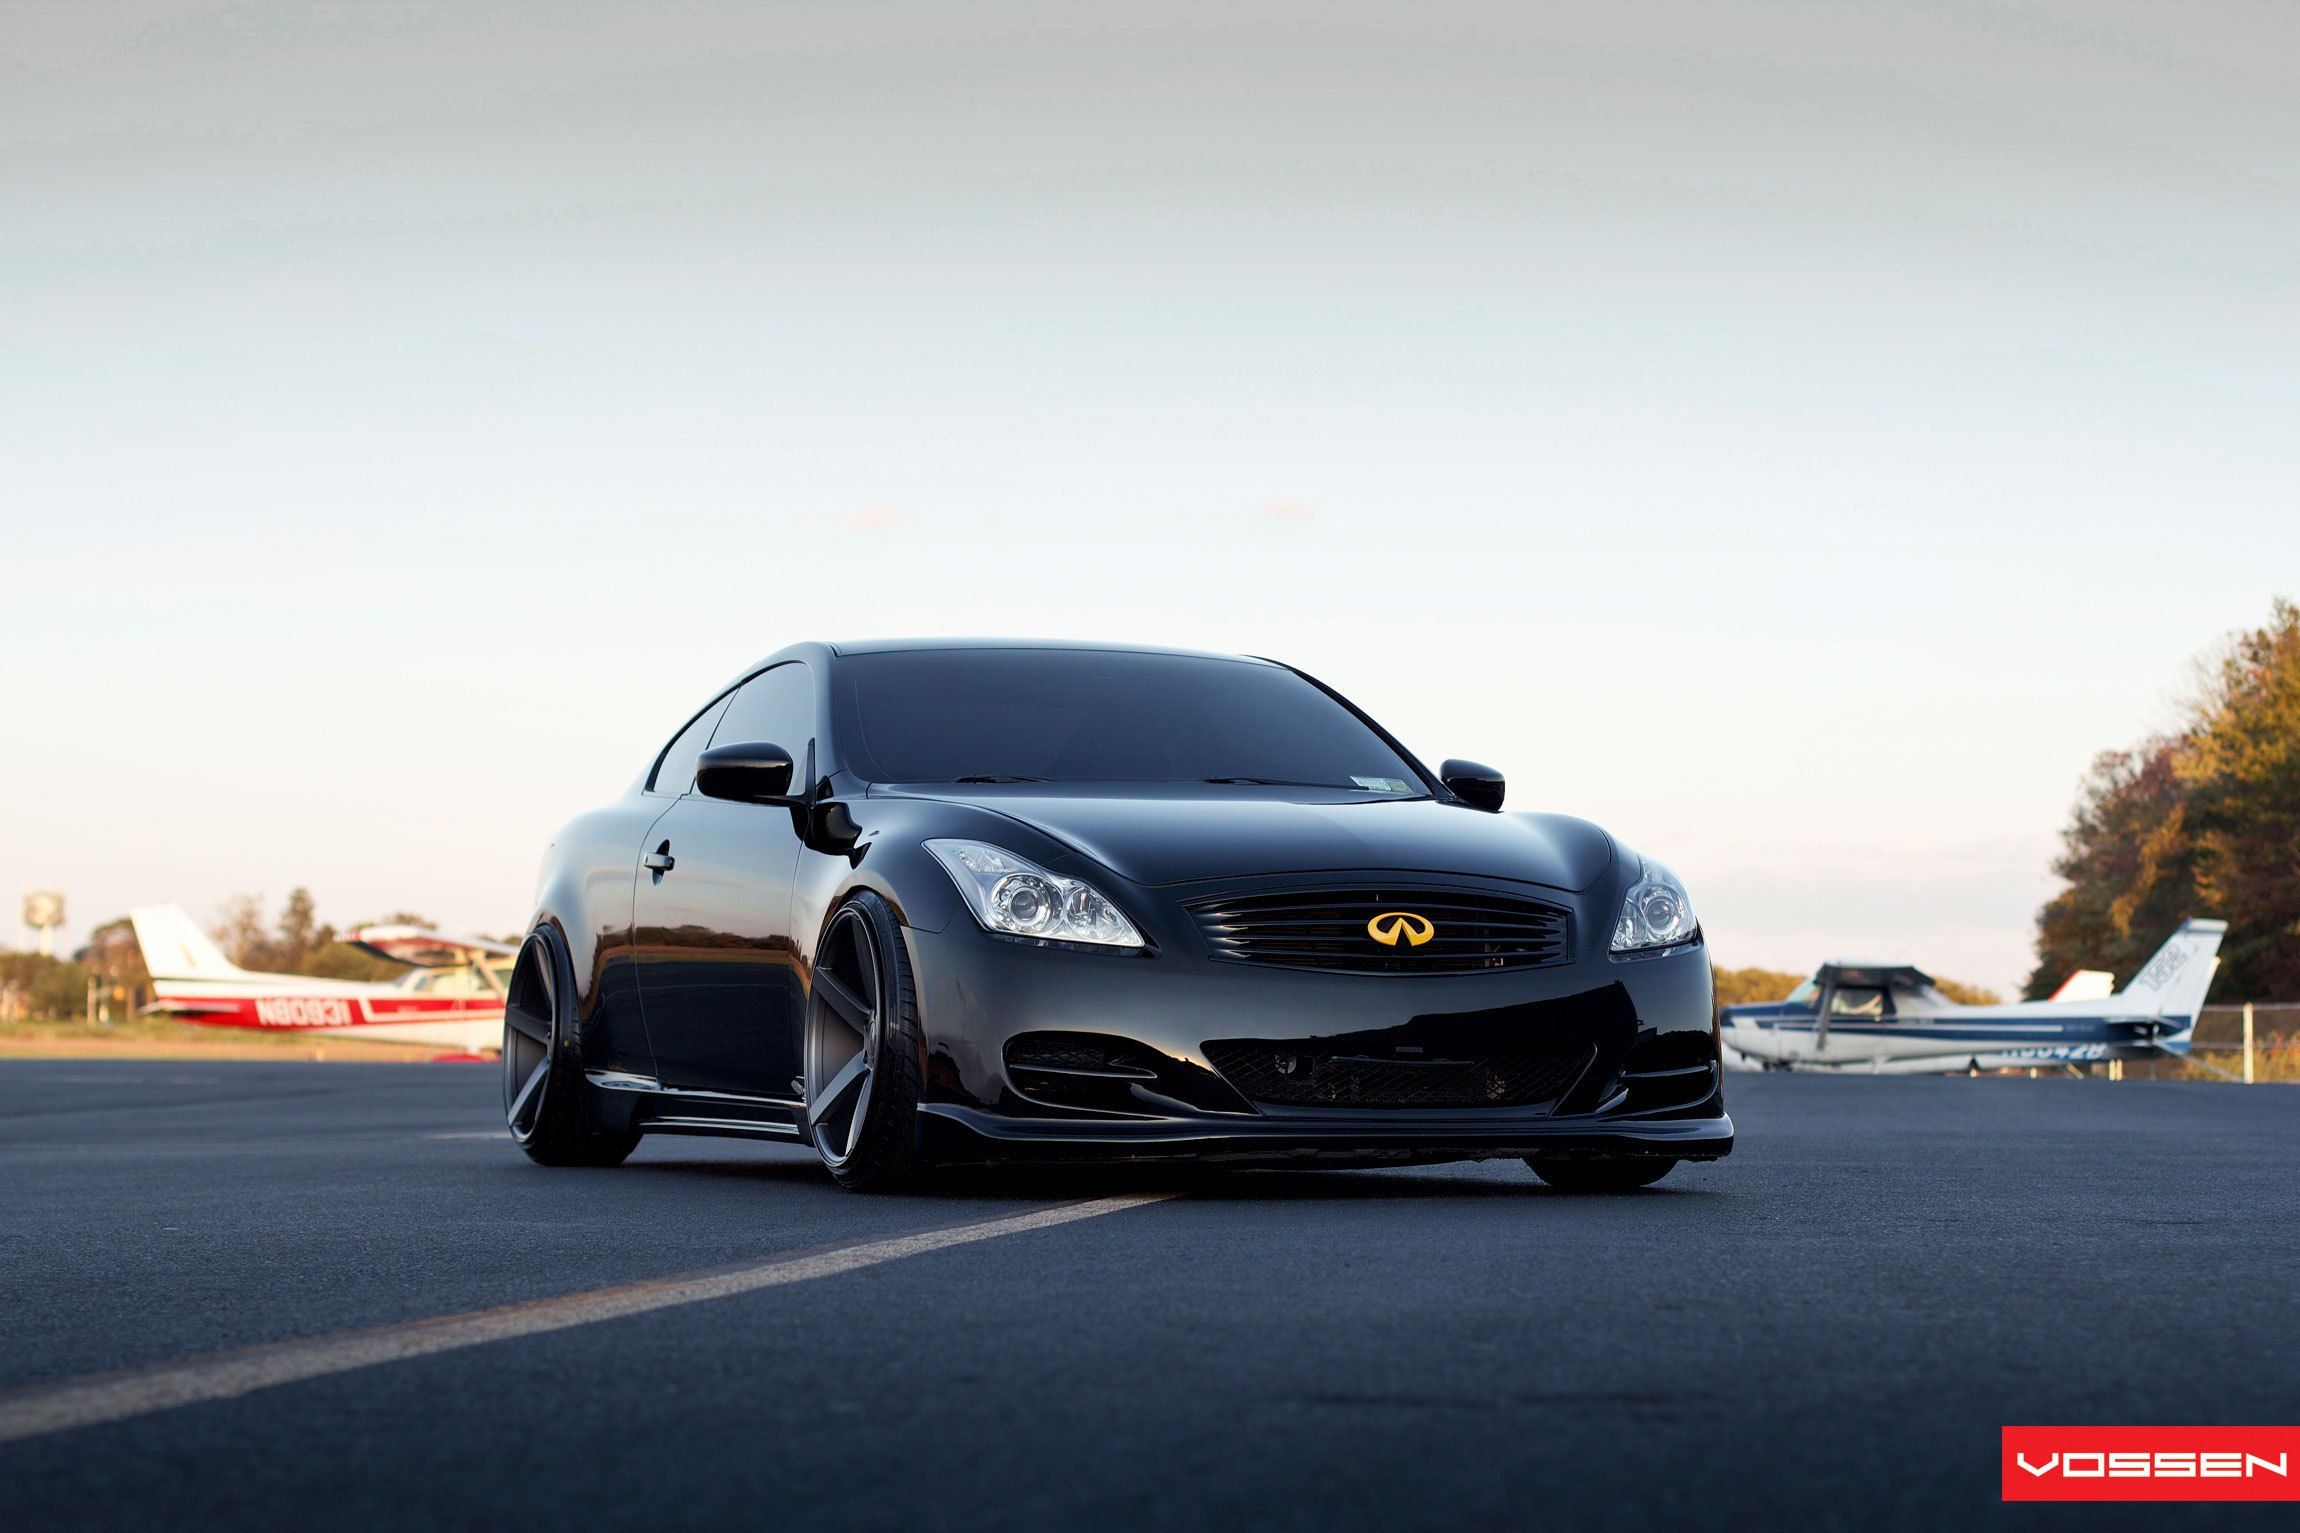 Stunning Blacked Out Infiniti G37 Coupe With Deep Concave Vossen Rims Carid Com Gallery